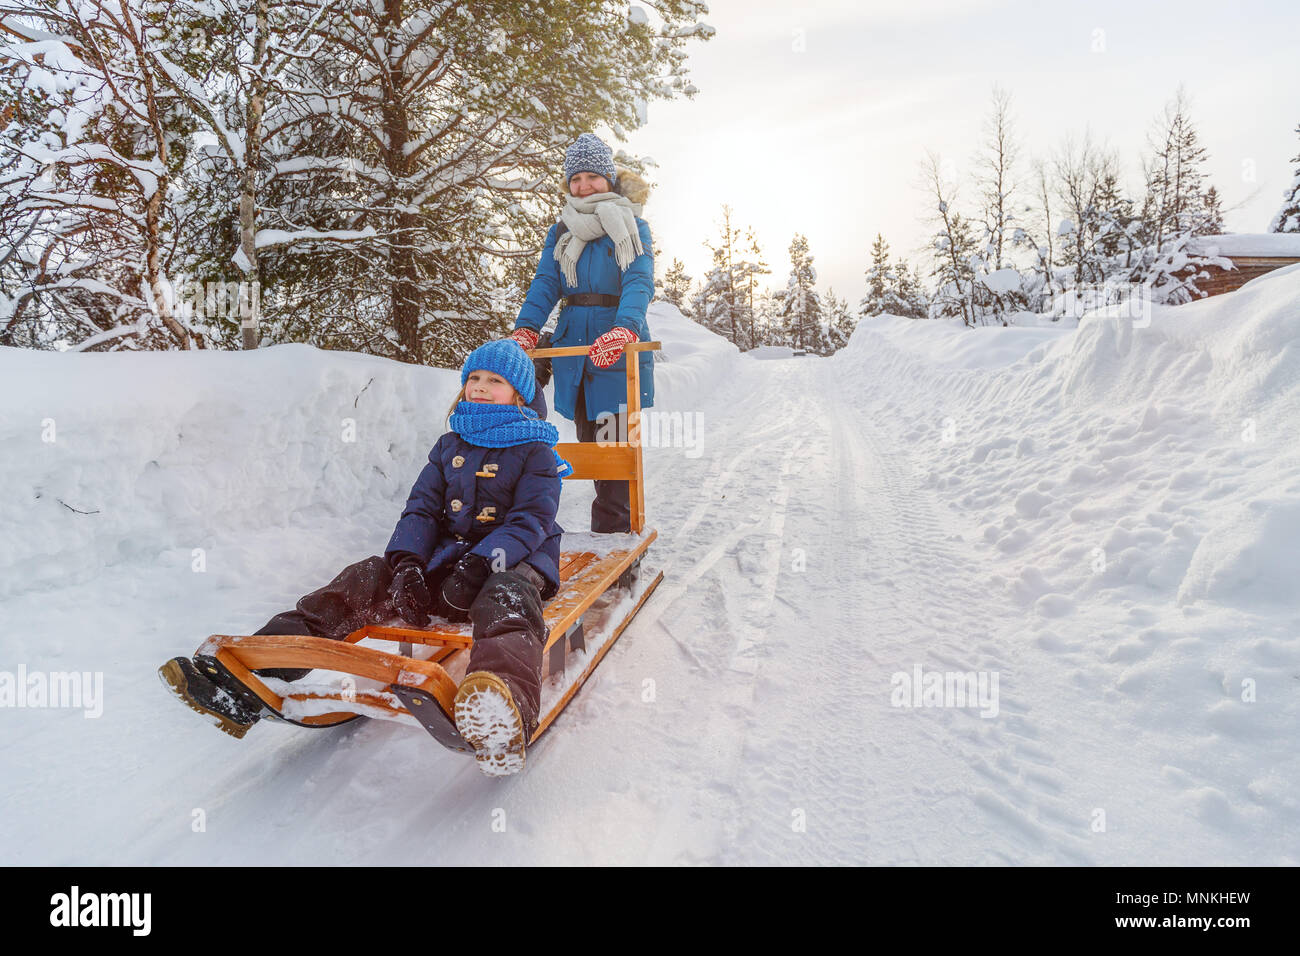 Beautiful family of mother and daughter enjoying snowy winter day outdoors having fun sledging - Stock Image